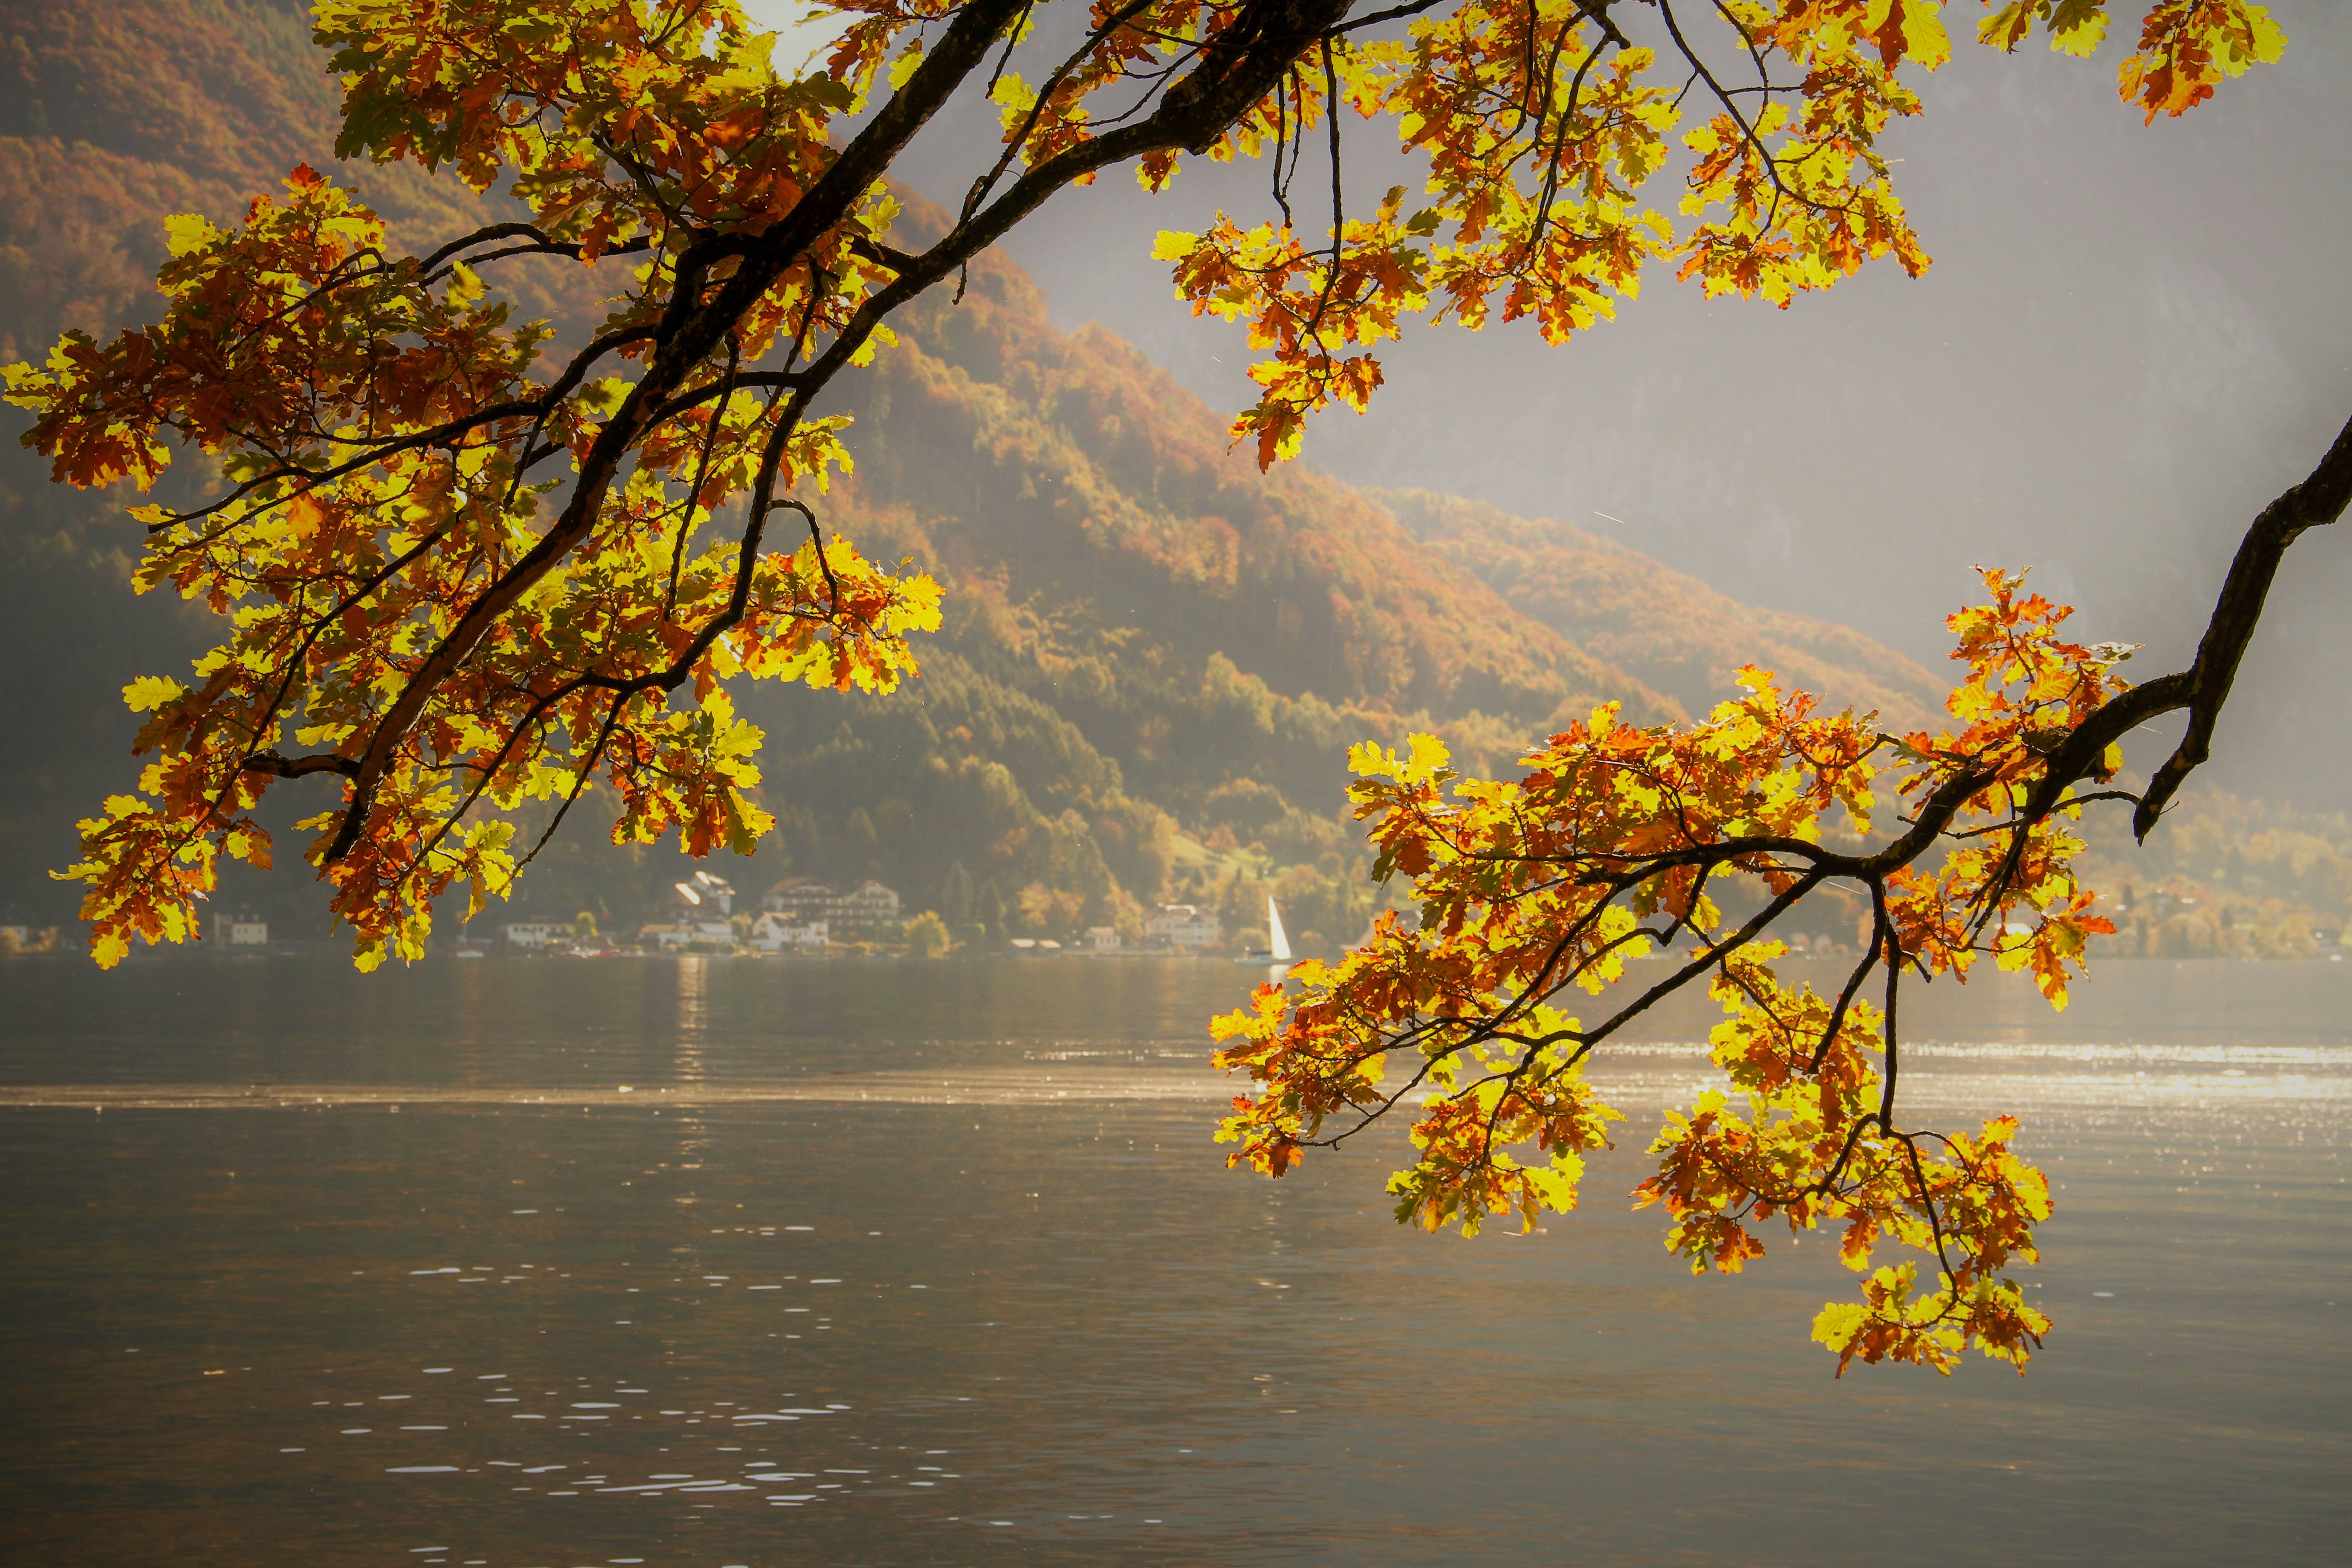 autumn, lake, fall leaves, yellow, bright,